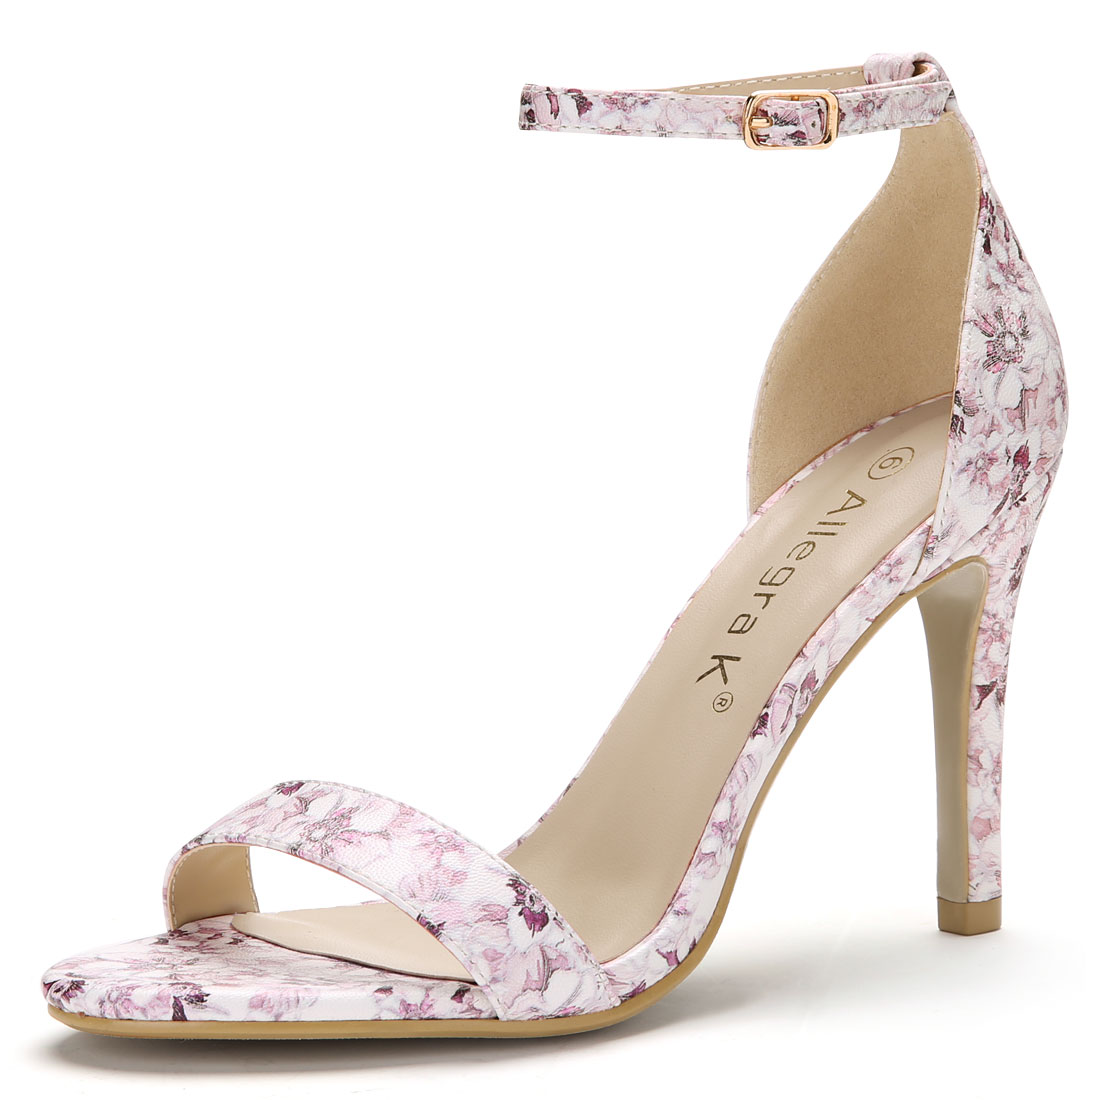 Women Floral Prints Stiletto Heel Ankle Strap Sandals Light Purple US 8